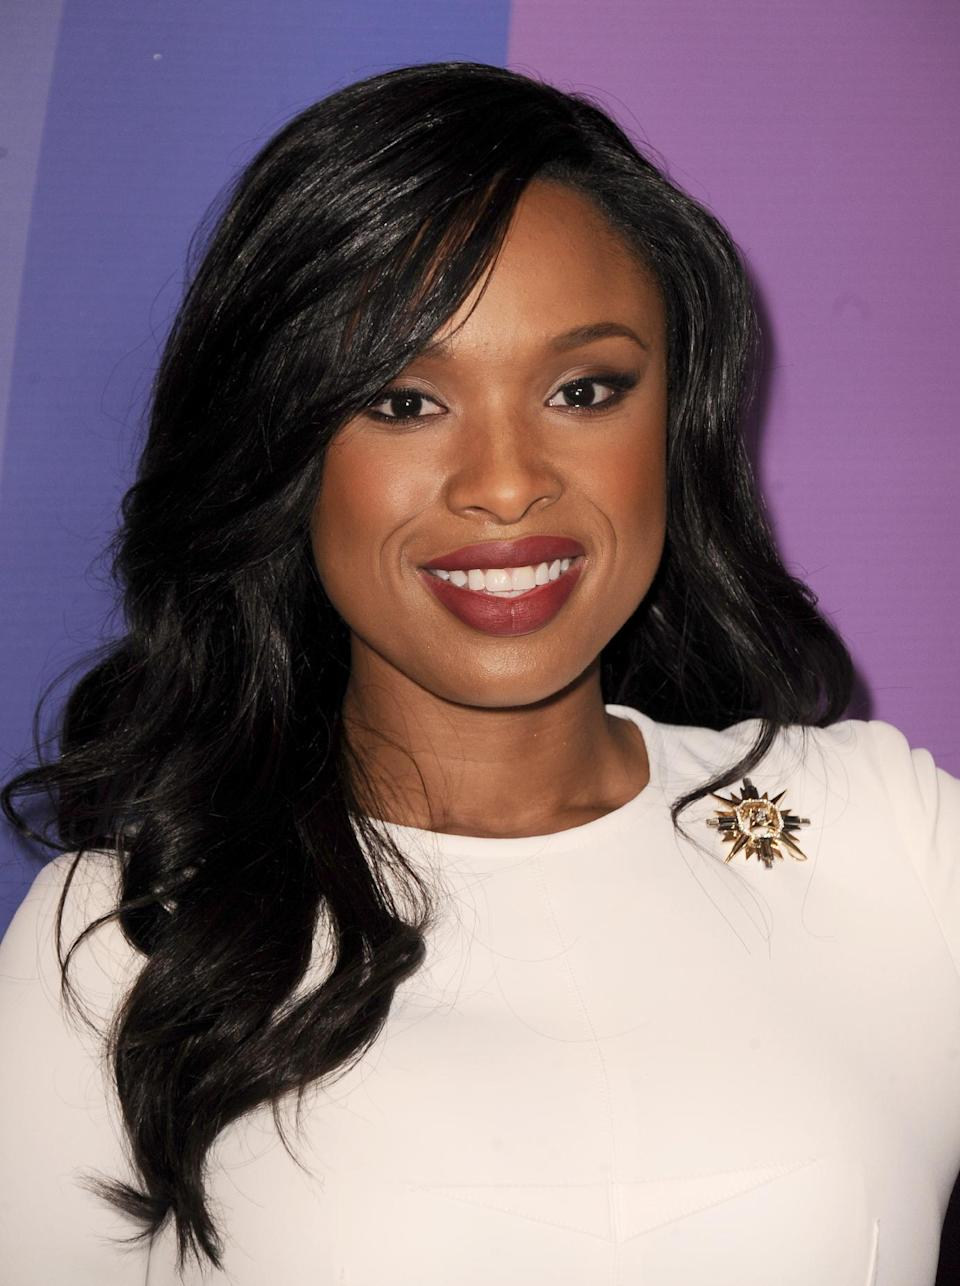 Actress/singer Jennifer Hudson arrives at Variety's 5th Annual Power of Women event at the Beverly Wilshire Hotel on Friday, Oct. 4, 2013, in Beverly Hills, Calif. (Photo by Jordan Strauss/Invision/AP)